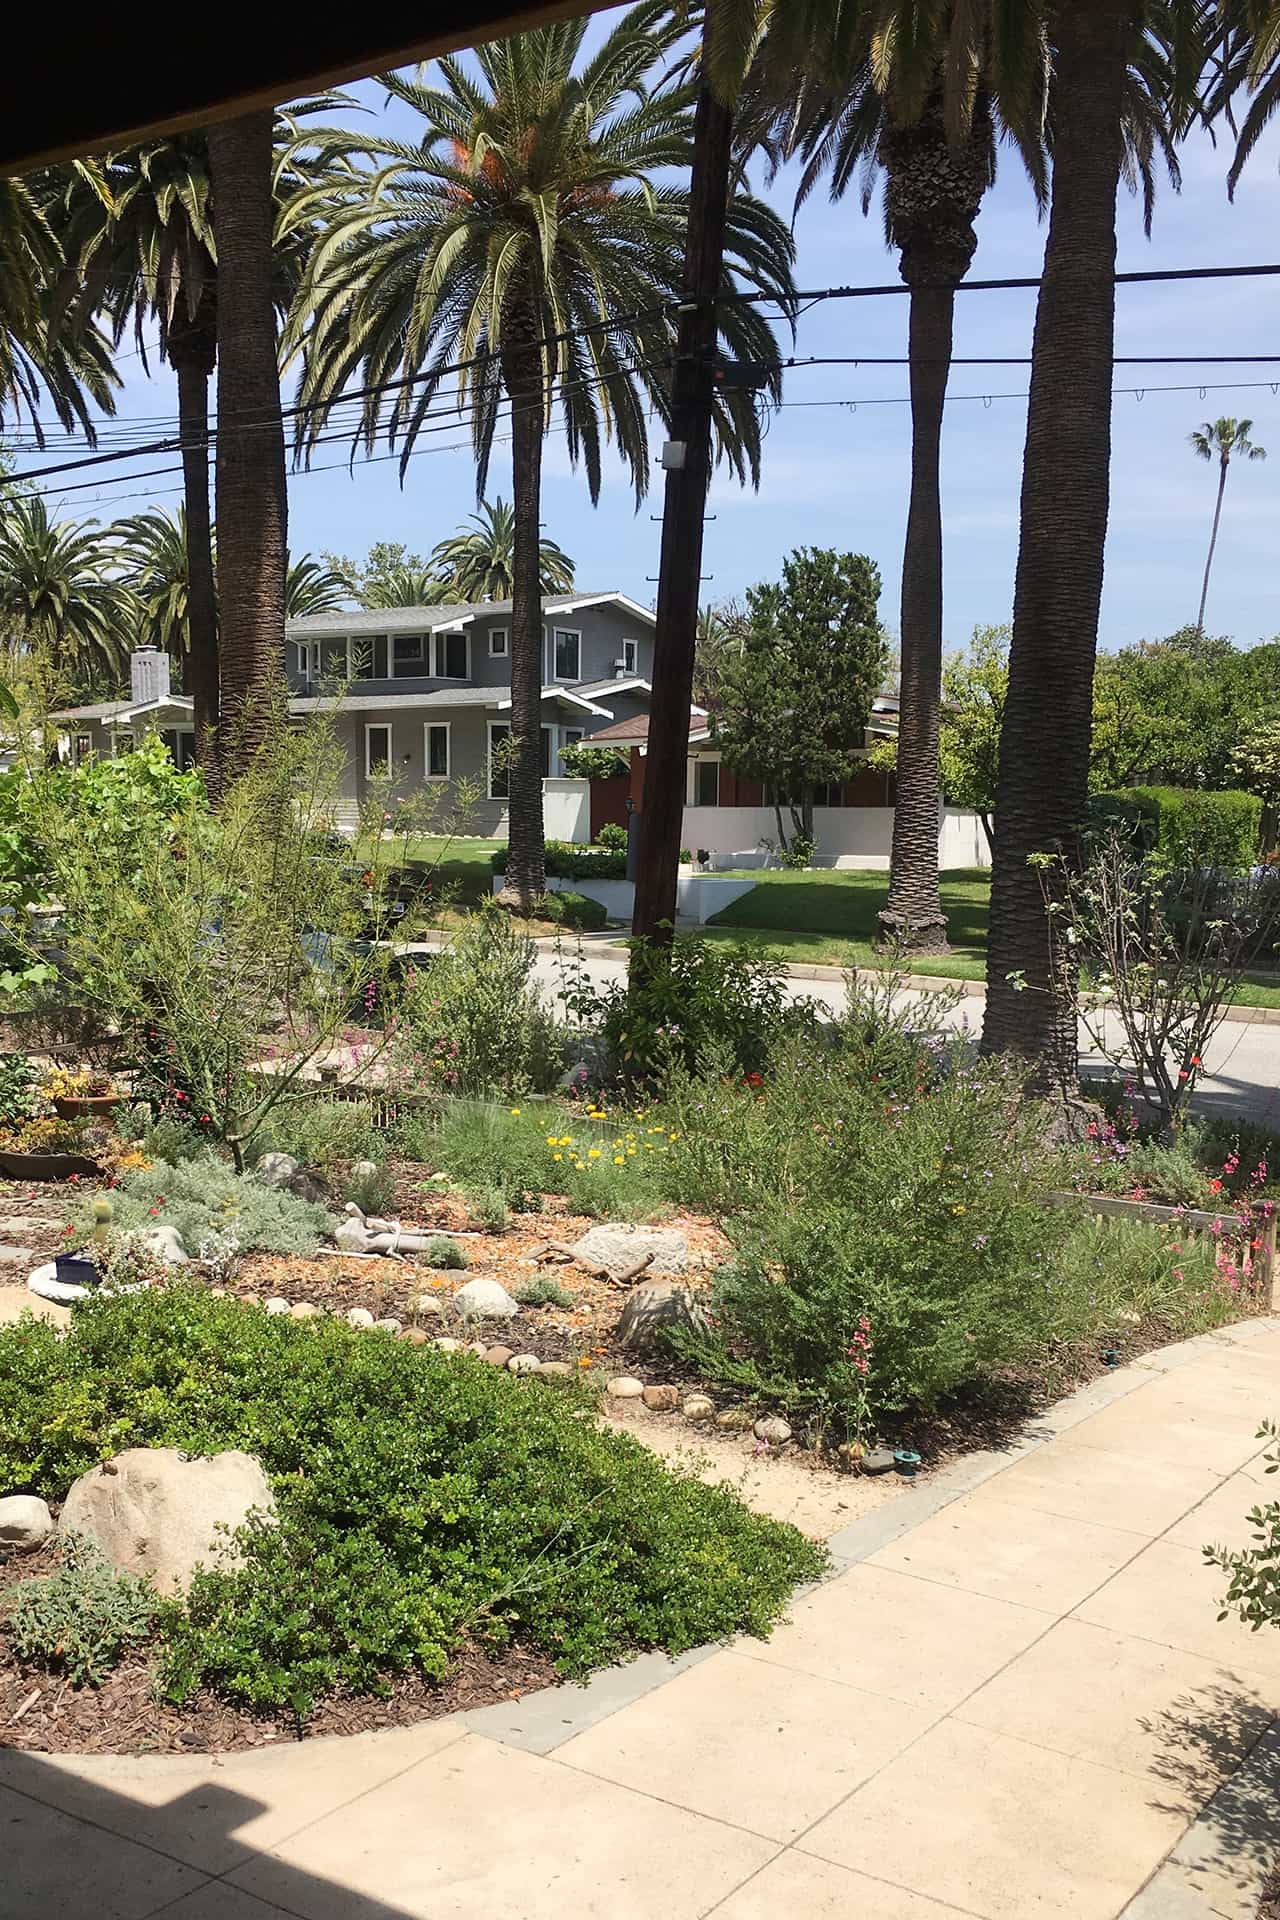 photo of garden 29 in South Pasadena